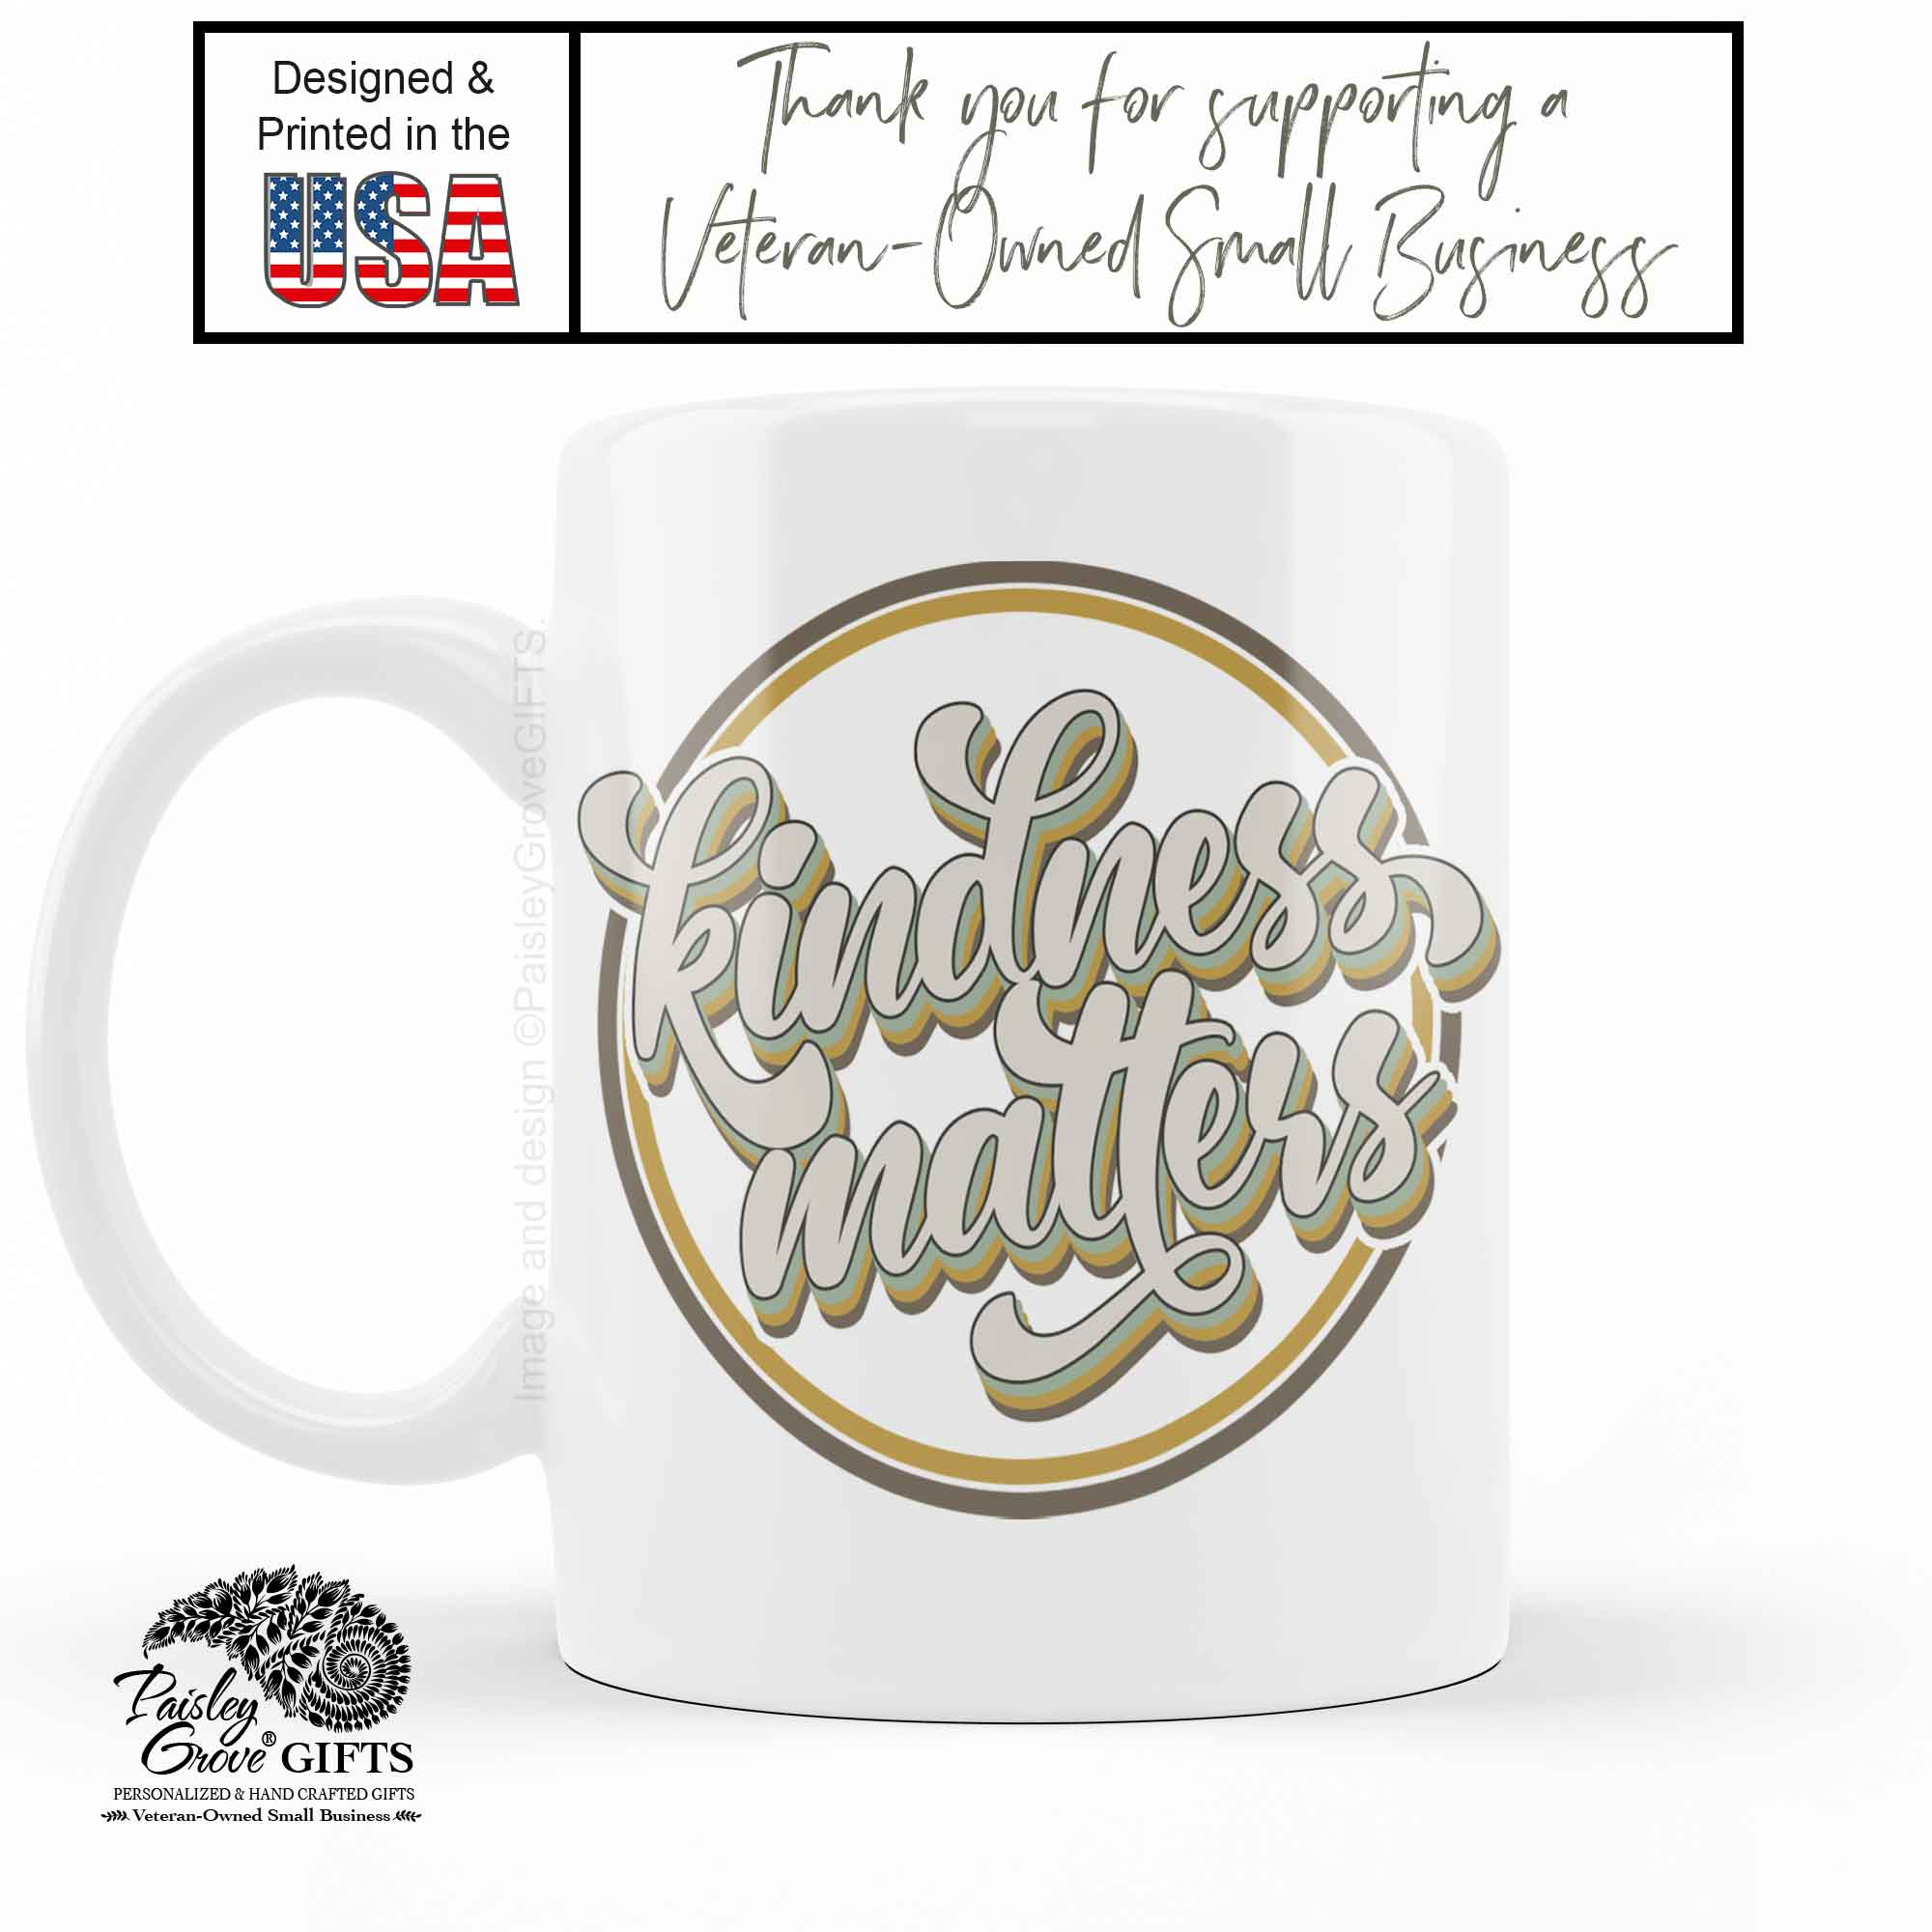 CopyrightPaisleyGroveGIFTS P001a Original art by PaisleyGroveGIFTS Kindness Matters Ceramic Coffee Mug